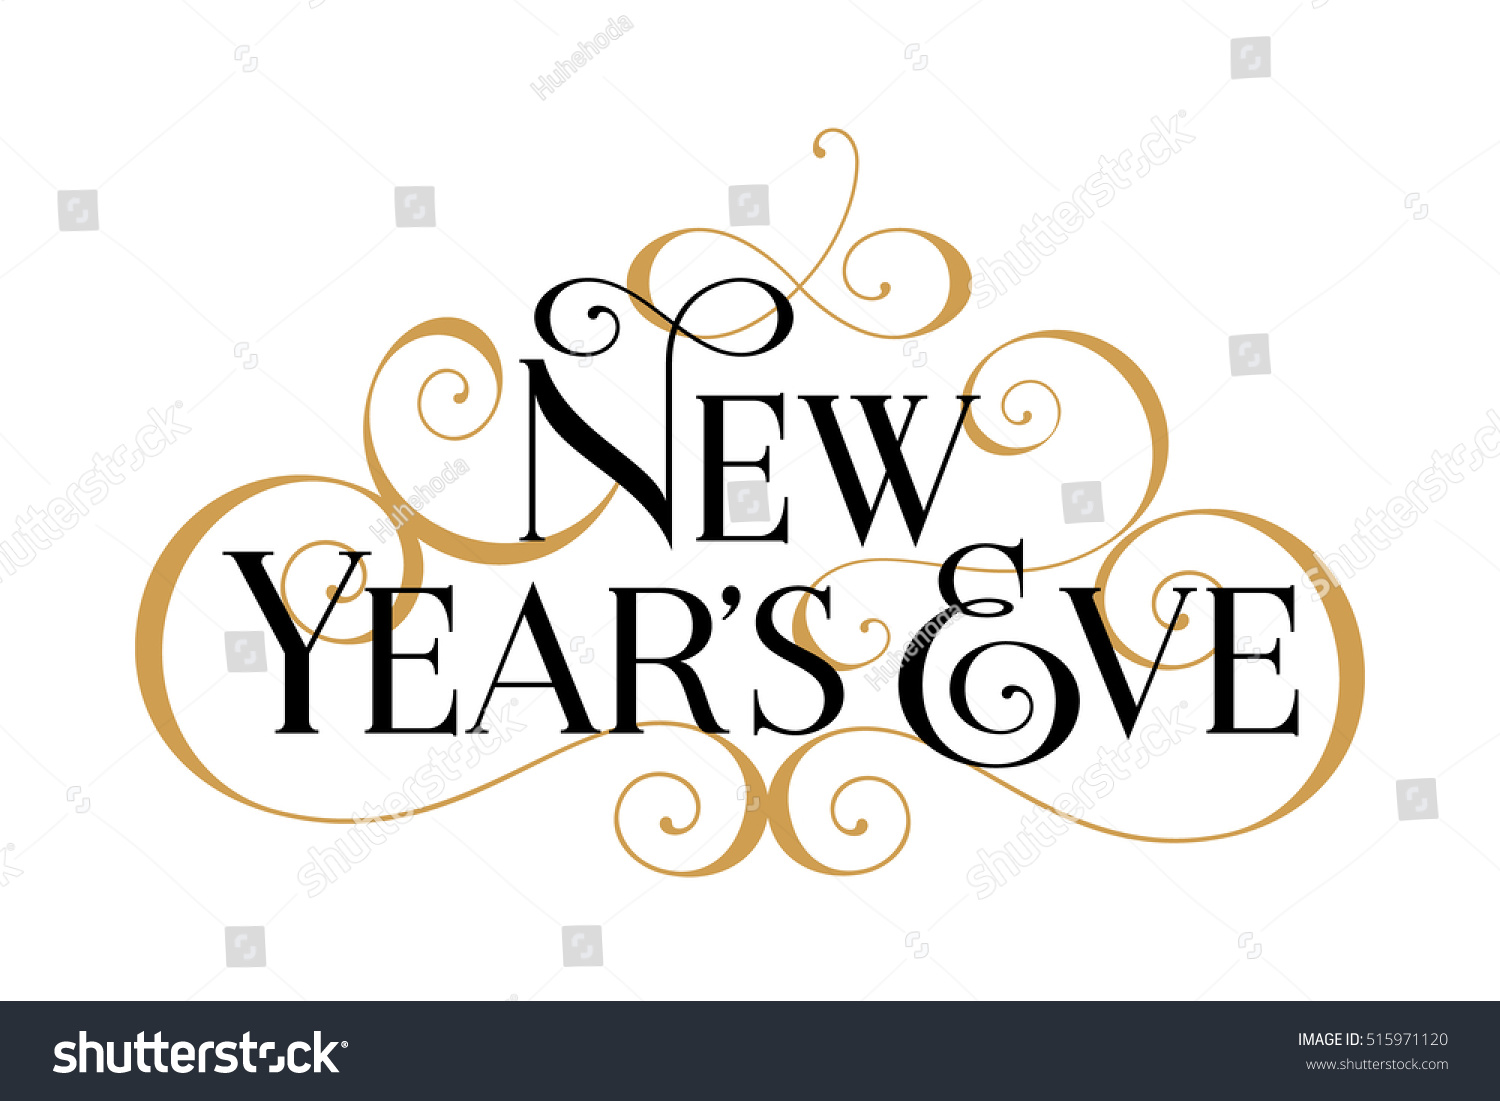 2018 clipart new year s eve 2018 new year s eve transparent free for download on webstockreview 2020 2018 new year s eve transparent